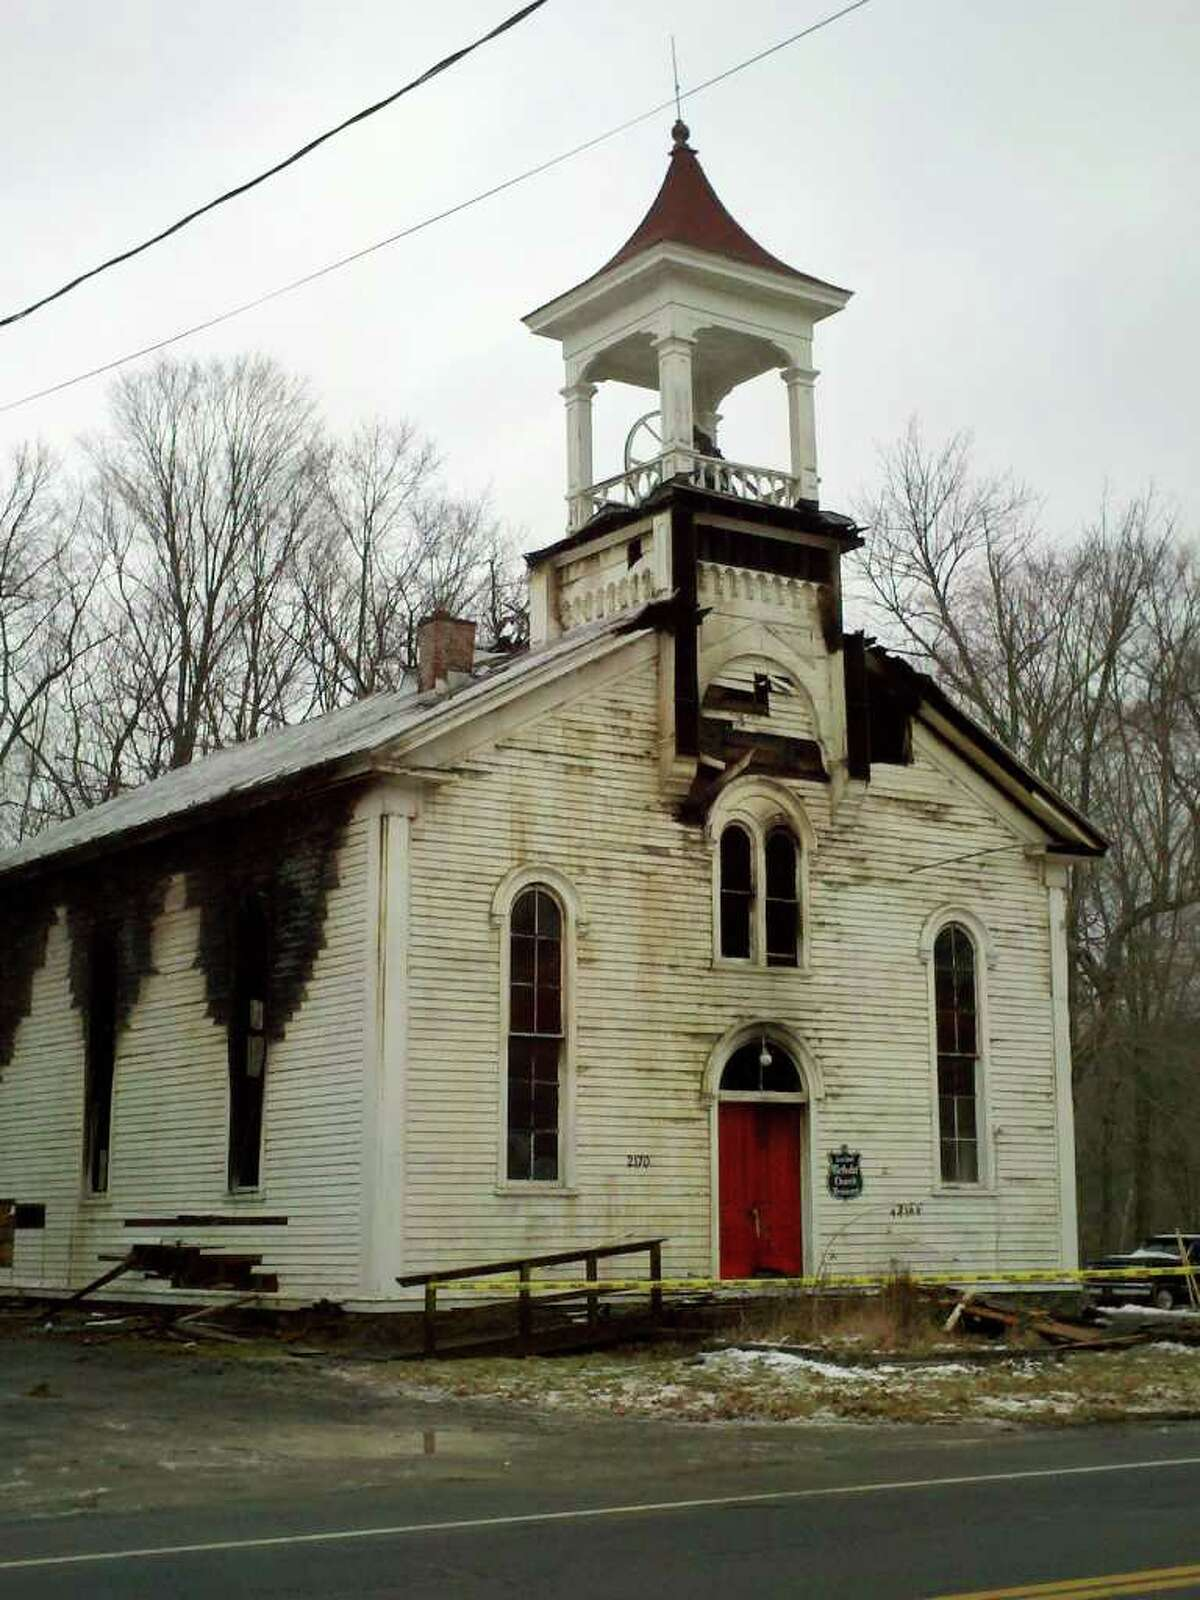 The United Methodist Church on Route 20 in Brainard was consumed by fire early Wednesday, Dec. 22, 2010. (DAYELIN ROMAN / TIMES UNION)